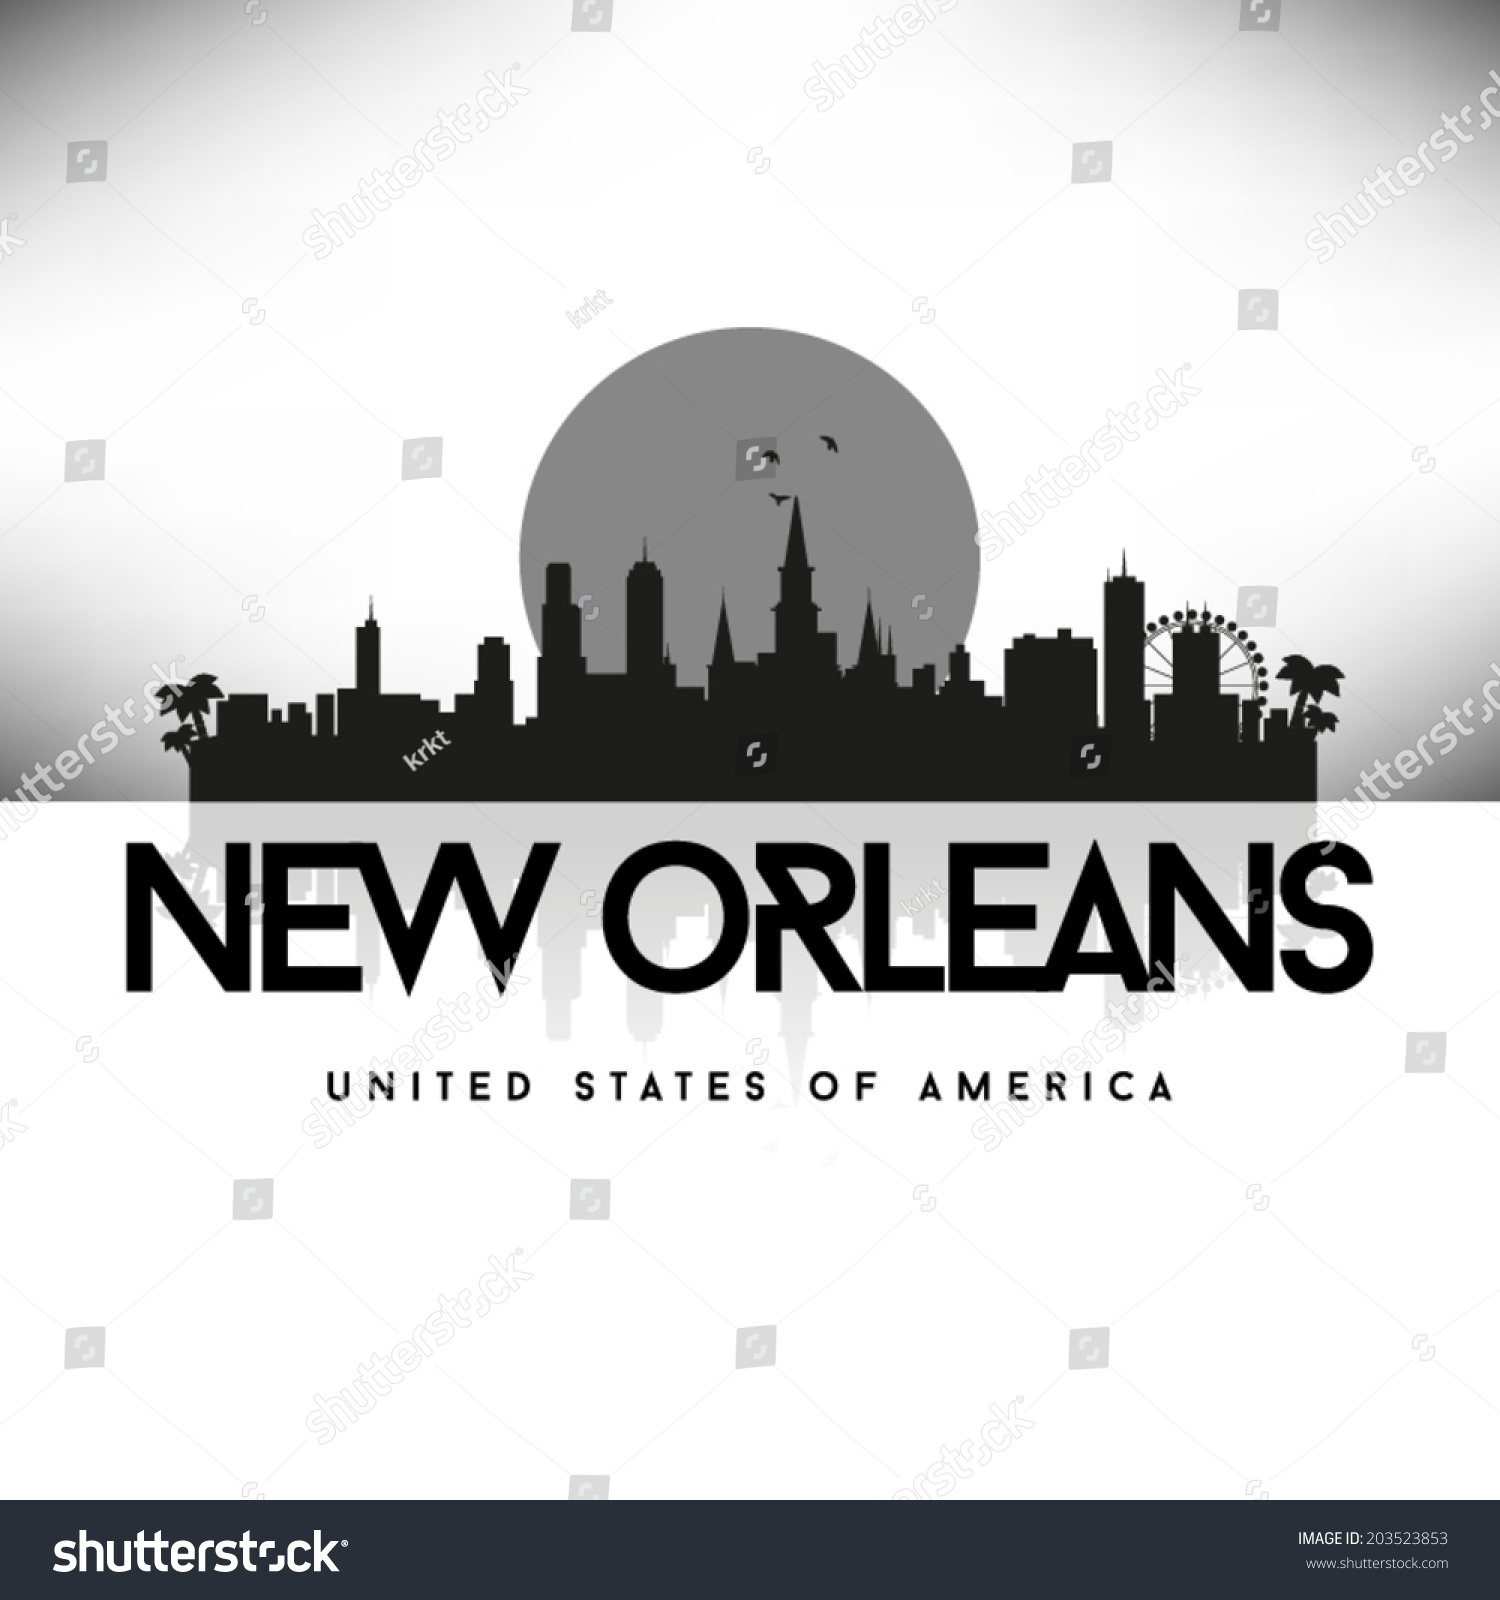 New Orleans Louisiana Black Skyline Silhouette Stock ...